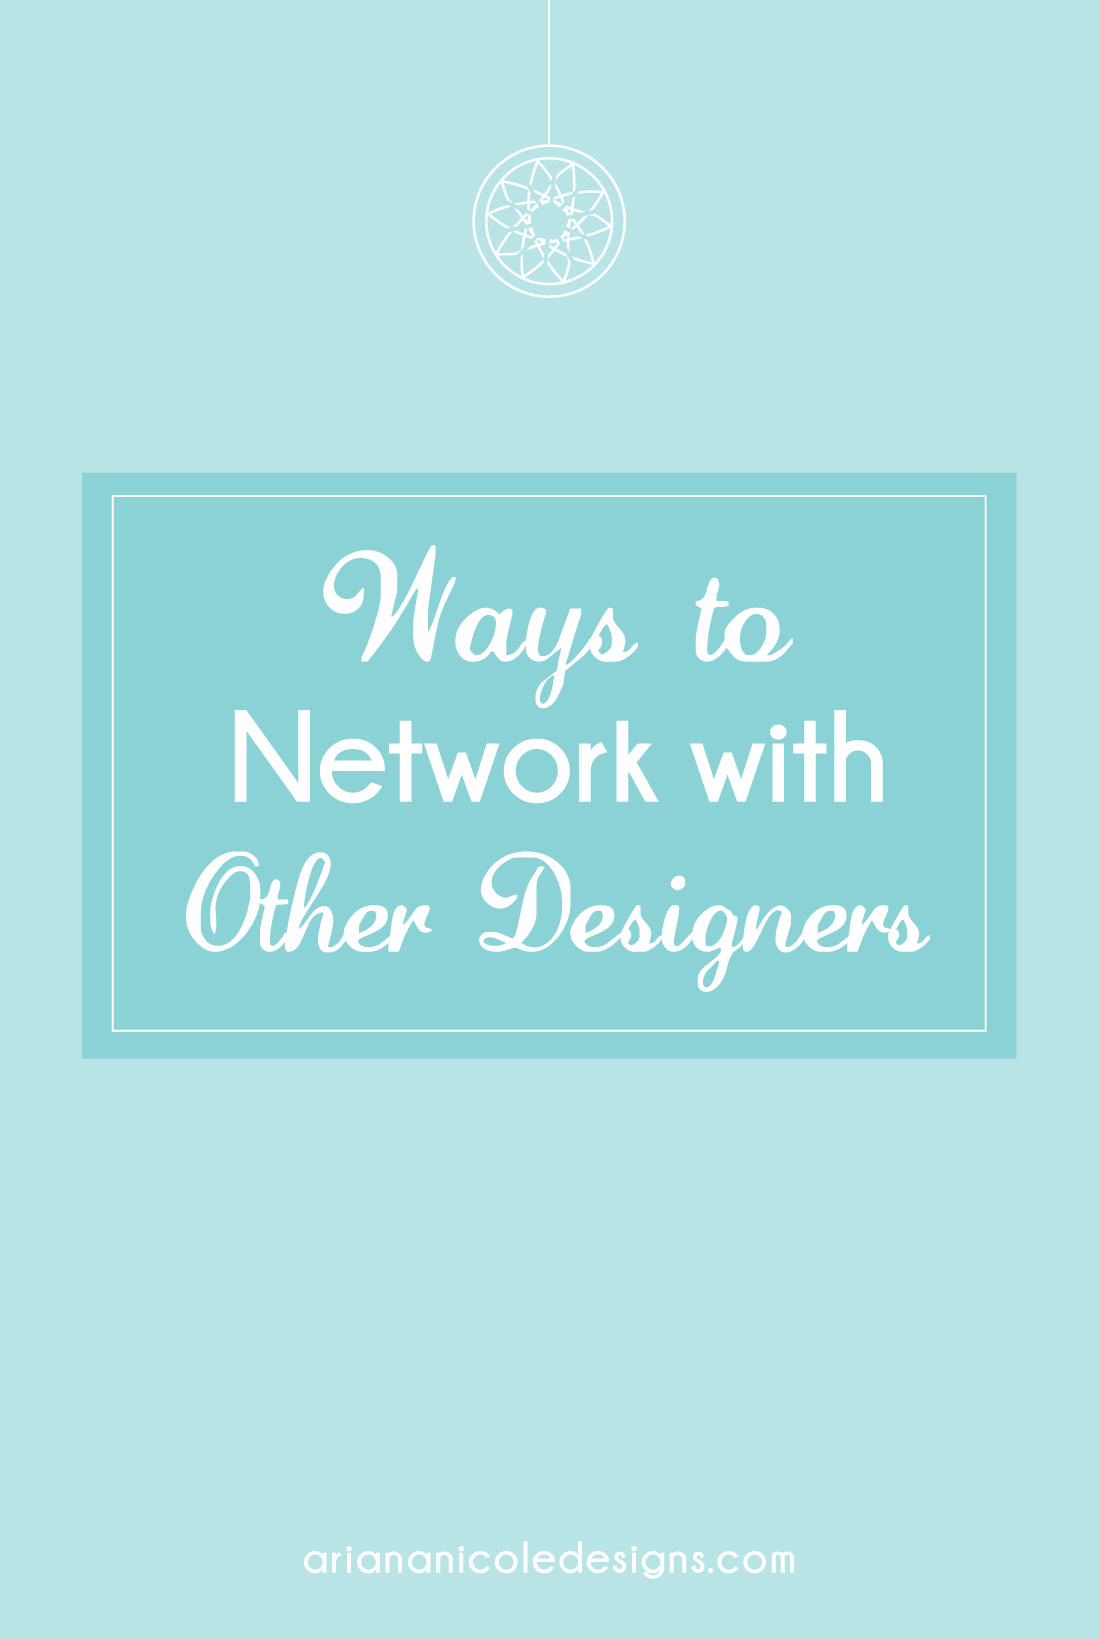 Ways_To_Network_With_Other_Designers-1100